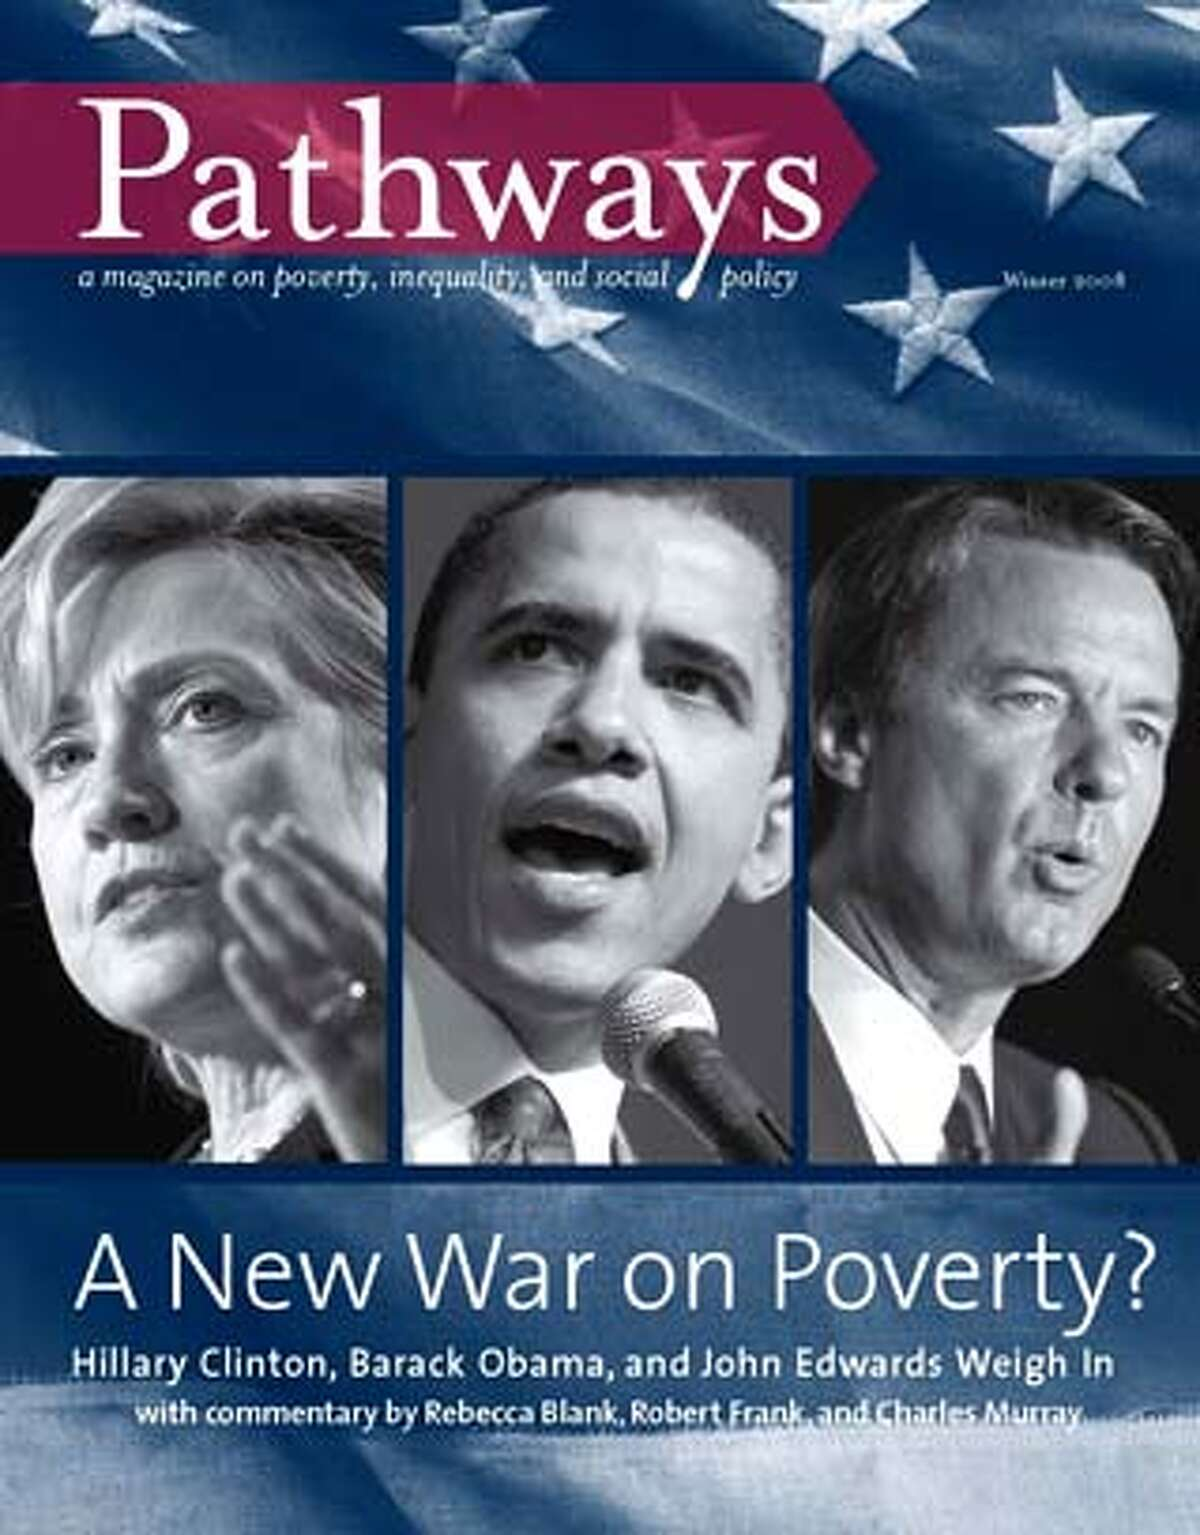 """Undated handout image showing the cover of the winter issue of the new quarterly magazine """"Pathways: A Magazine on Poverty, Inequality, and Social Policy."""" Pathways /"""